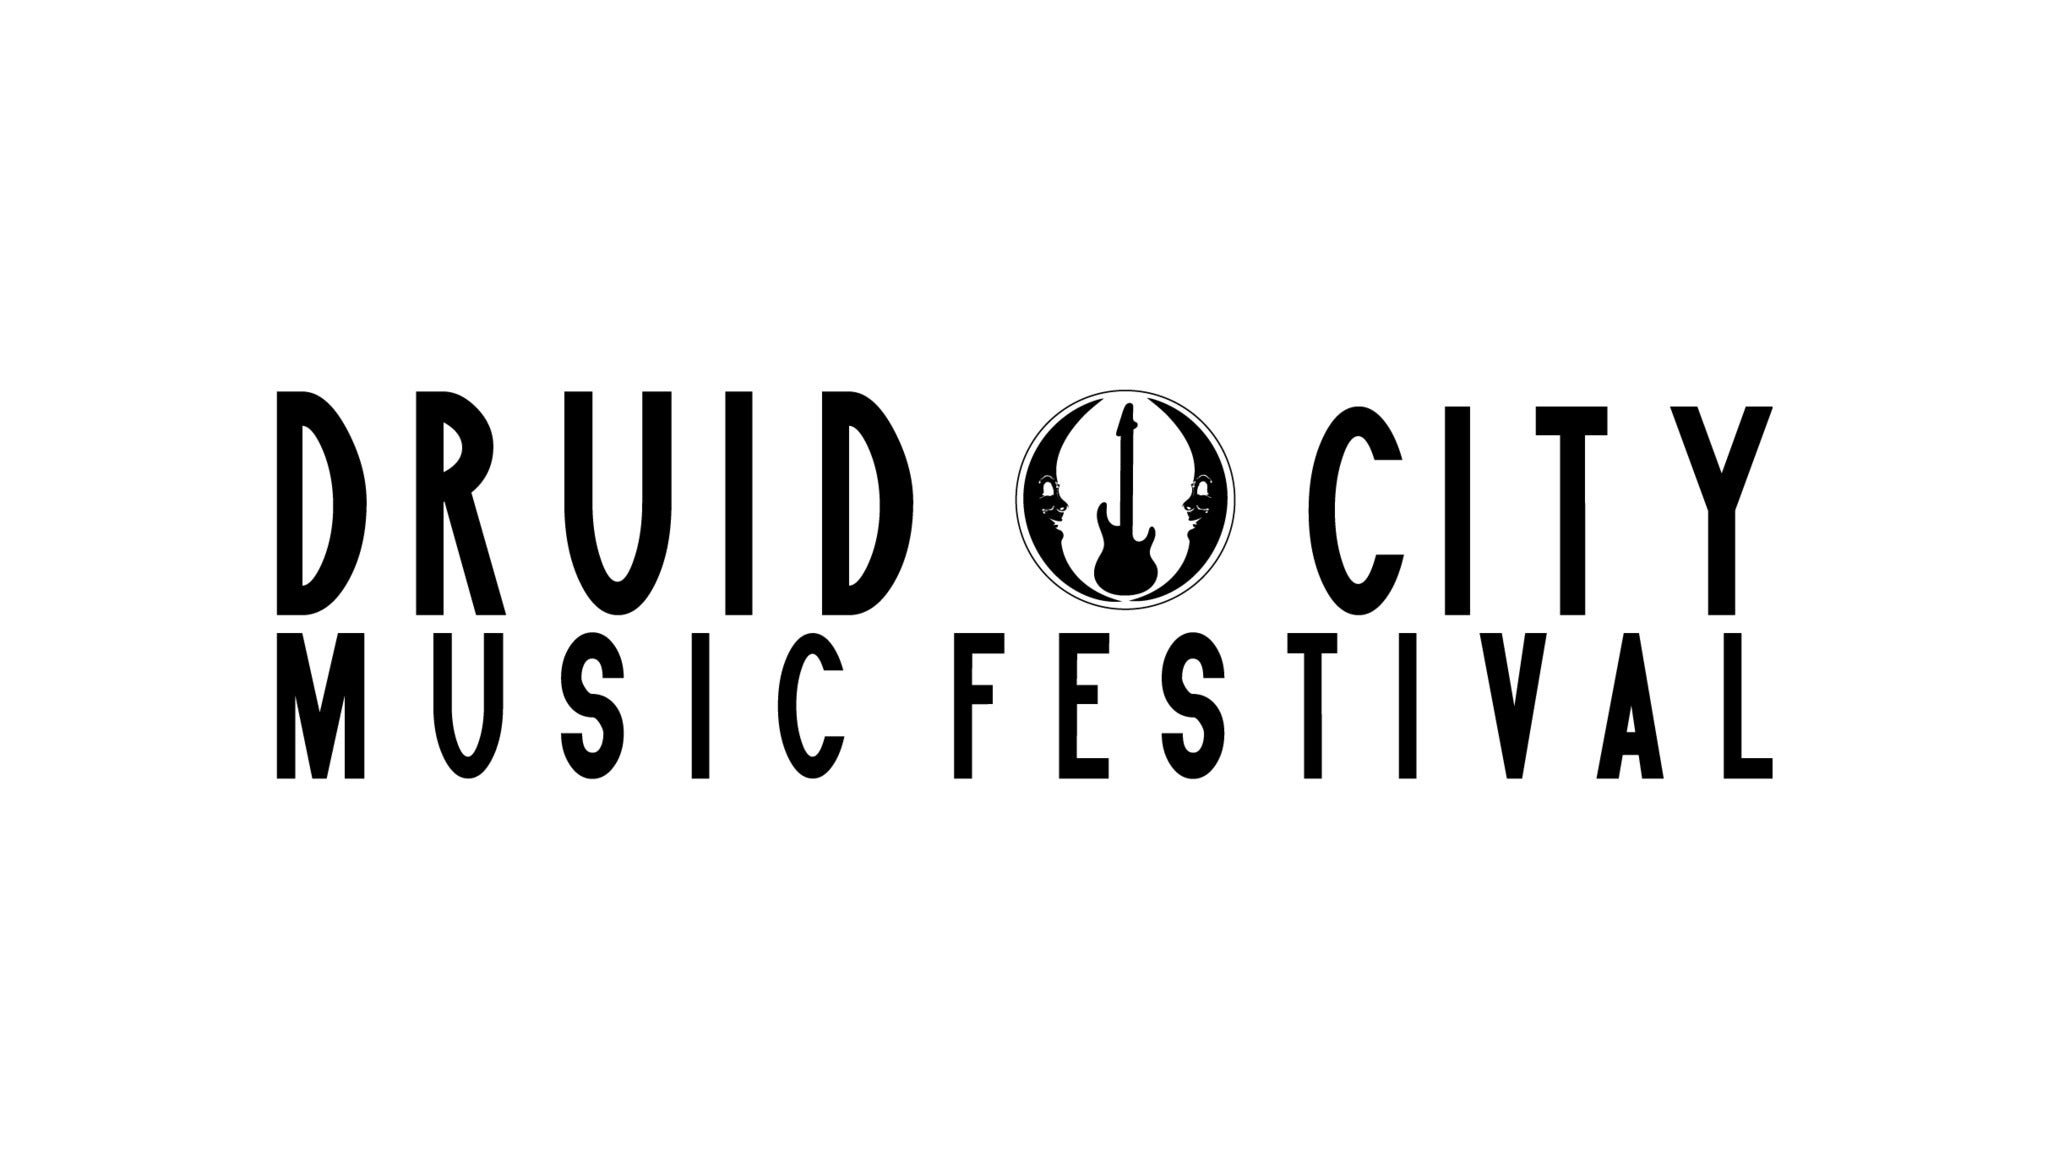 Druid City Music Festival August 23 - August 24, 2019